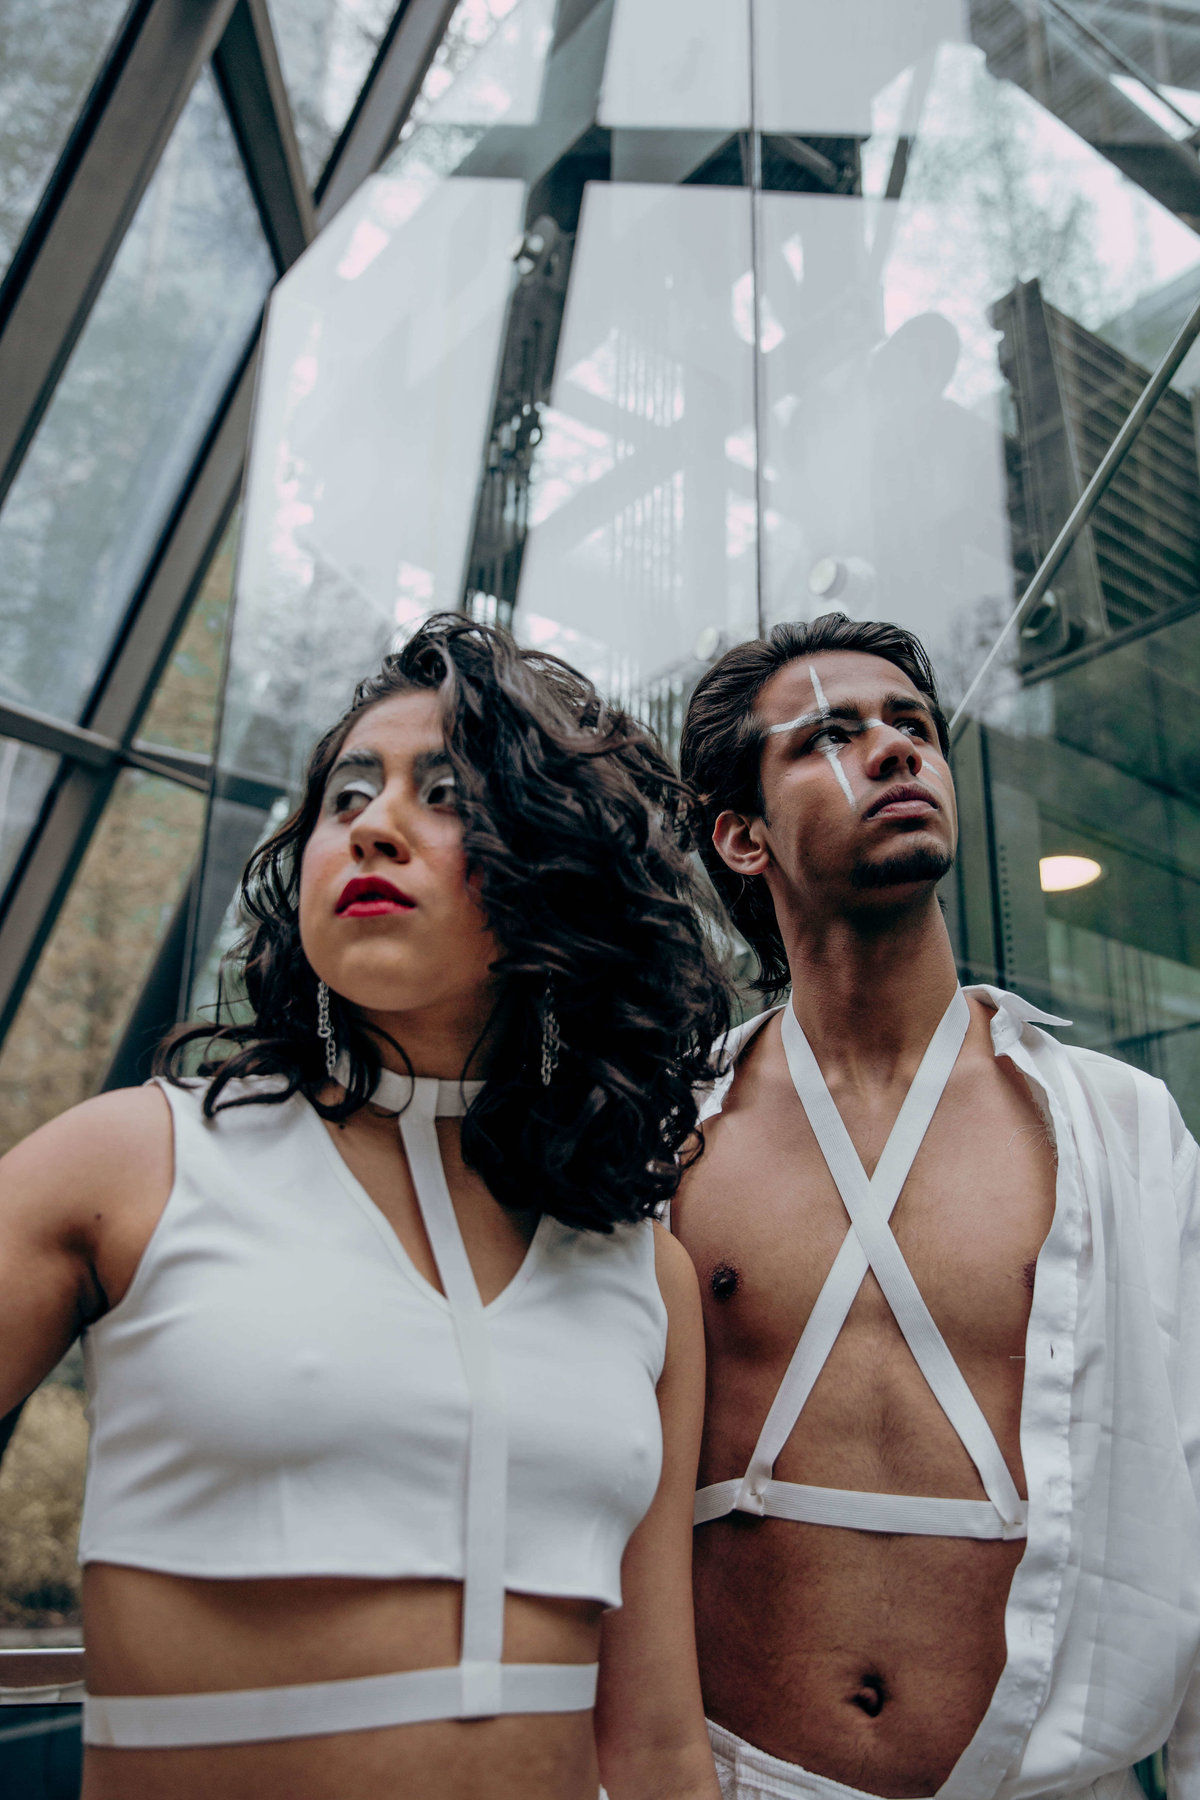 Cherie and Saad stood in a glass structure wearing all white.